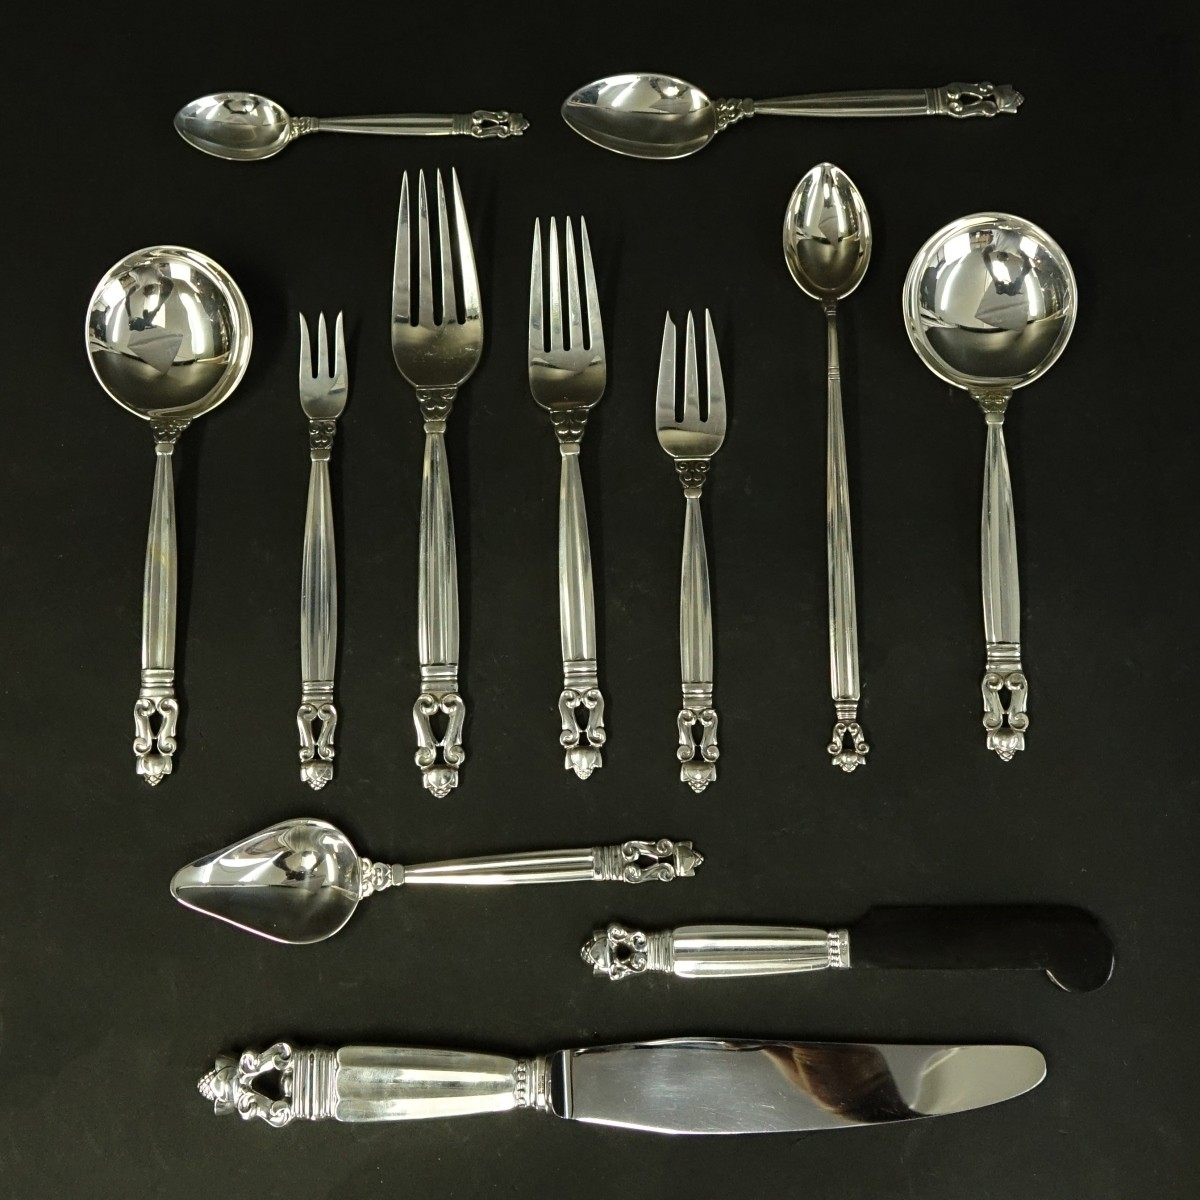 109 Pieces Georg Jensen Acorn Flatware